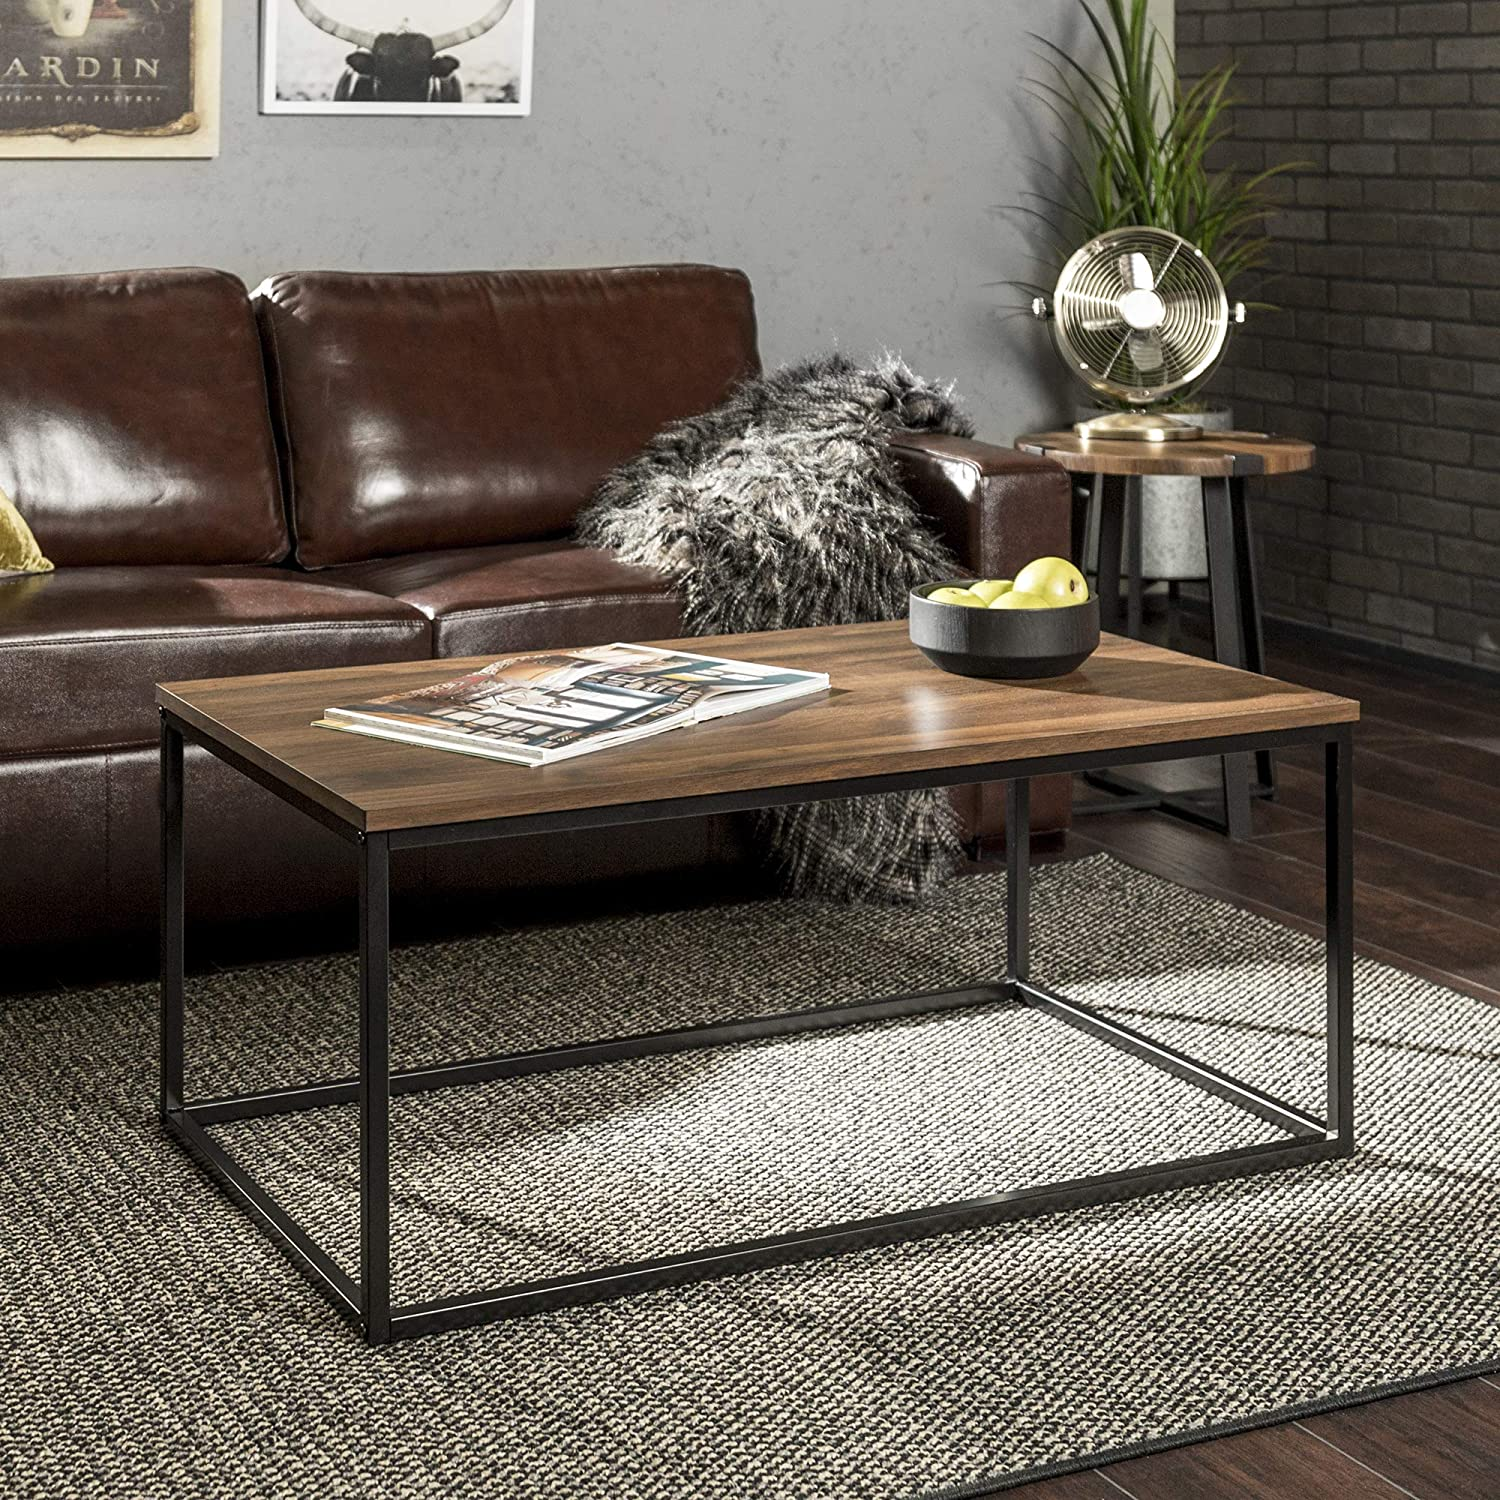 Walker Edison Furniture Modern Wood Open Rectangle Coffee Accent Table Living Room, 42 Inch, Walnut Brown